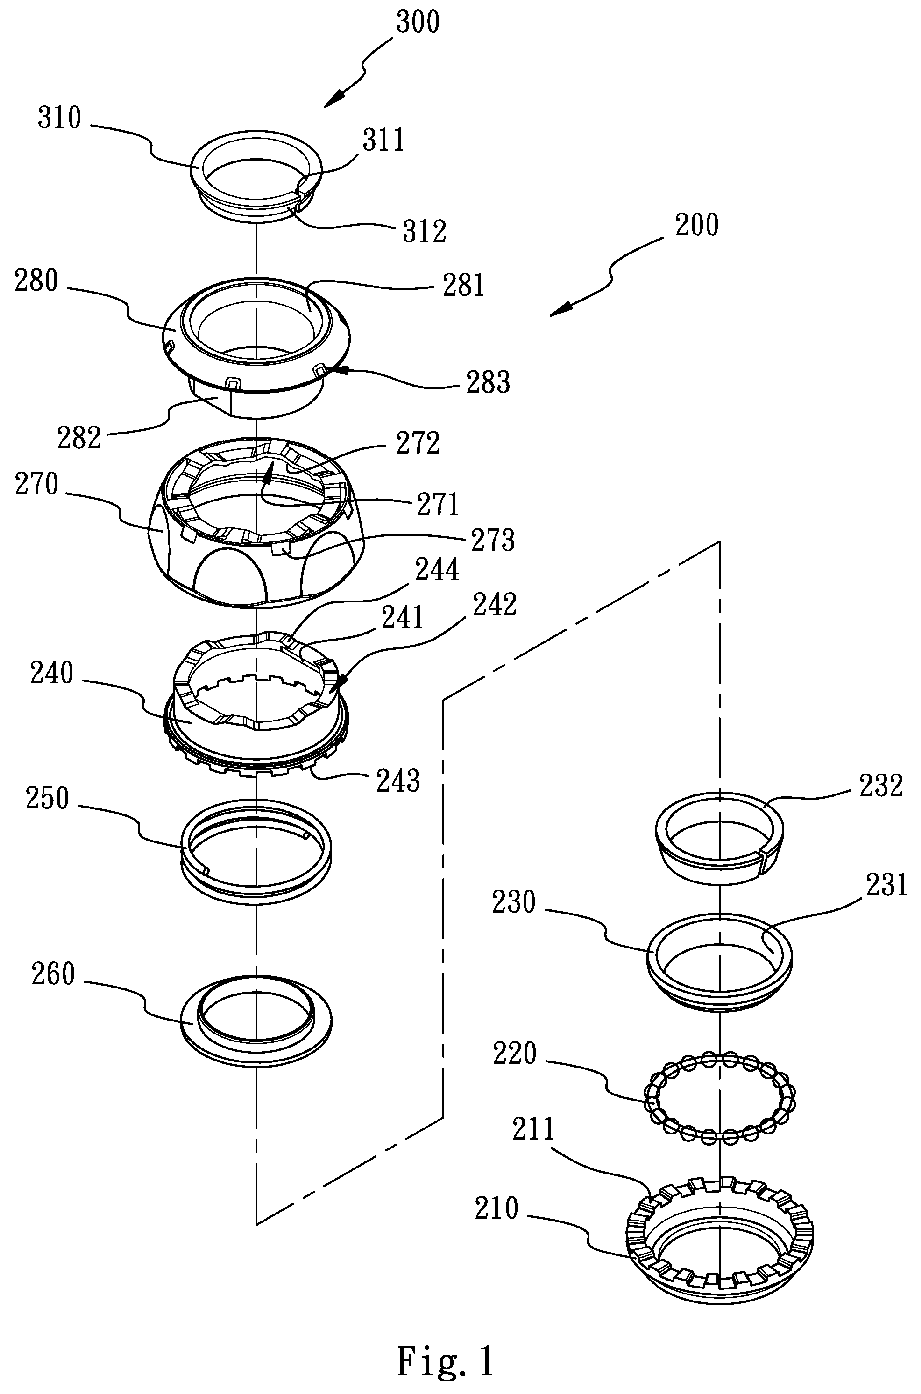 aheadset diagram bicycle handlebar lock device and method of the same patent 2239189  bicycle handlebar lock device and